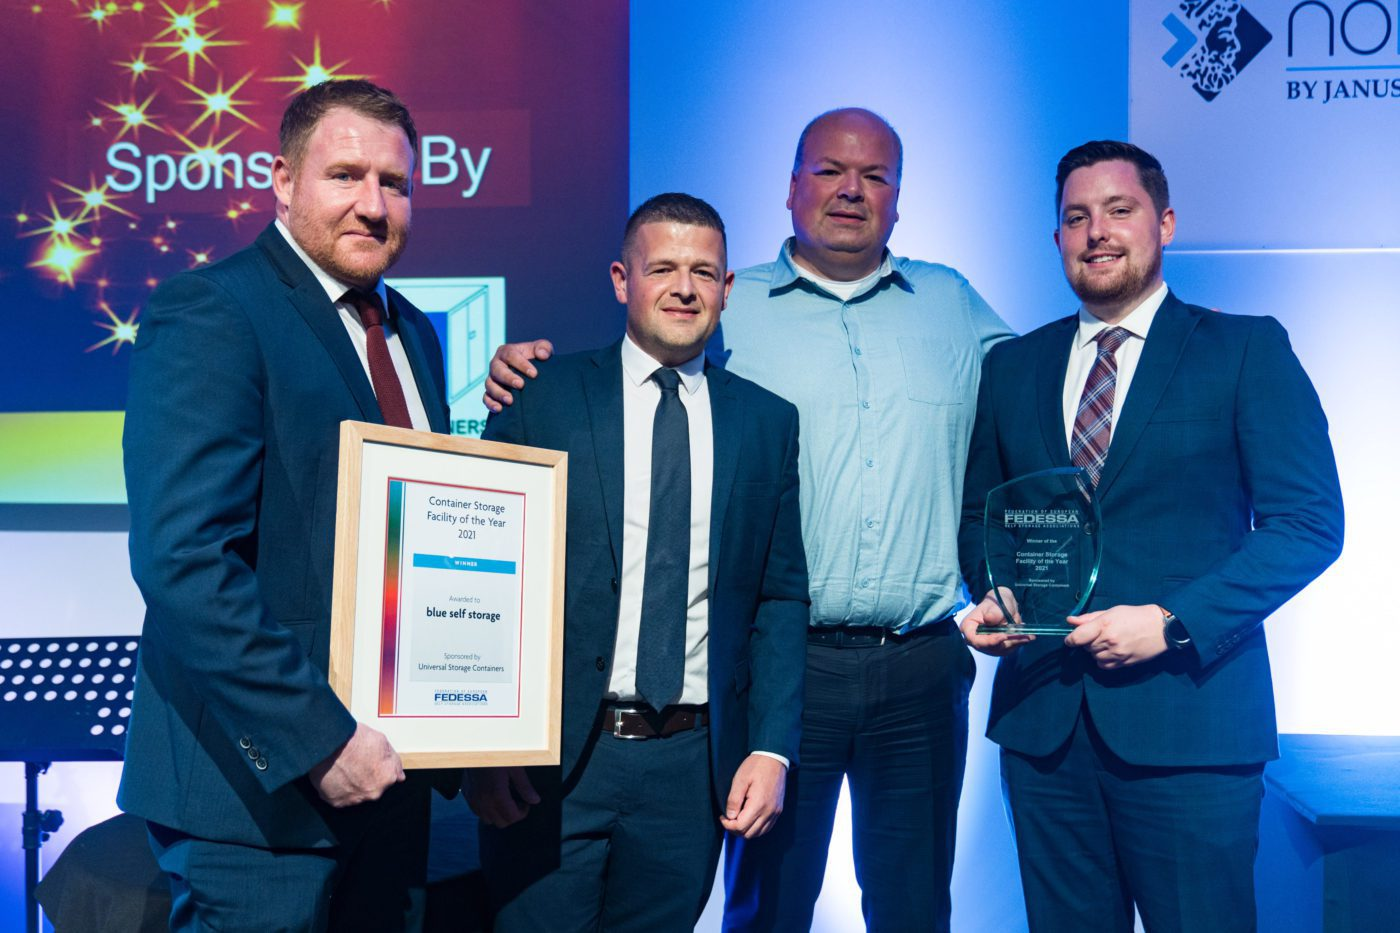 BSS winner European Container Storage Facility of the Year 2021